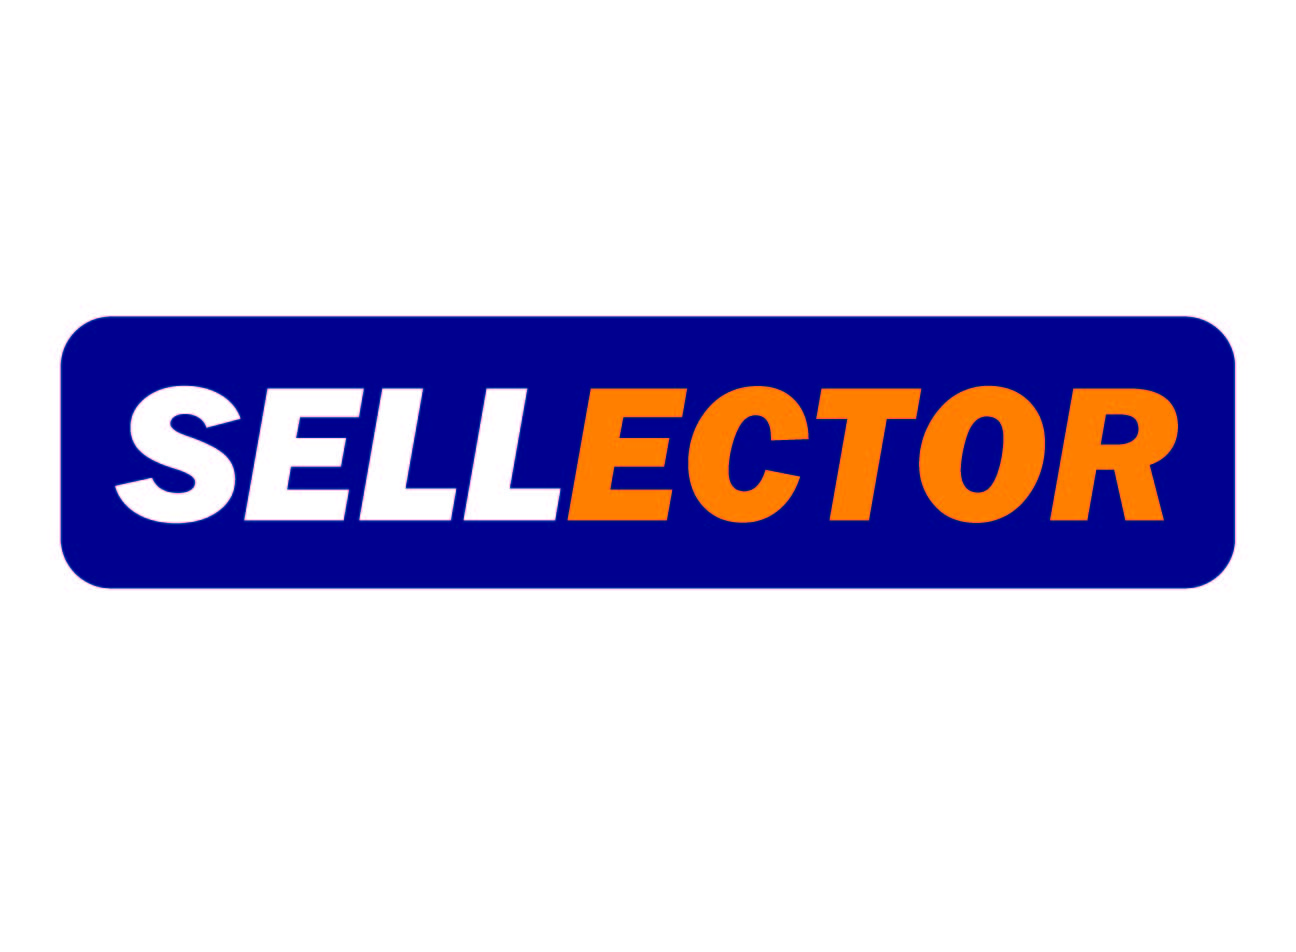 Logo Design by Mohamed Sheikh - Entry No. 118 in the Logo Design Contest Imaginative Logo Design for Sellector.